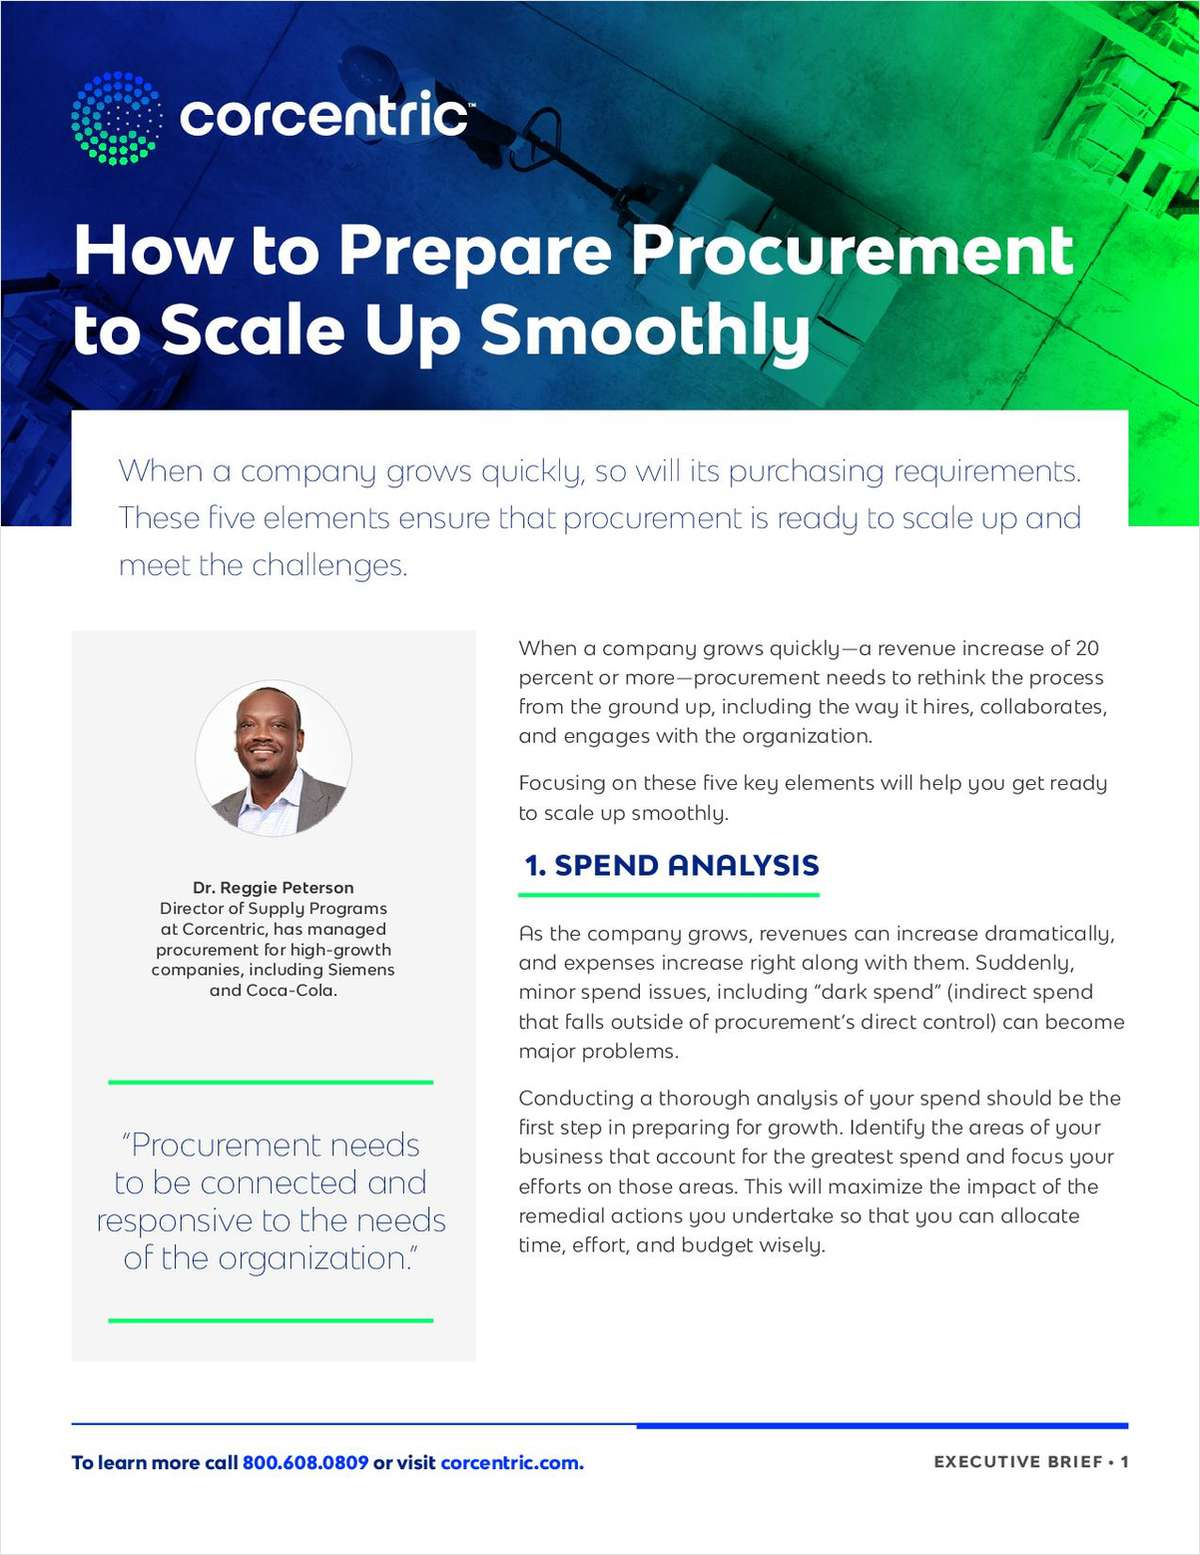 How to Prepare Procurement to Scale Up Smoothly